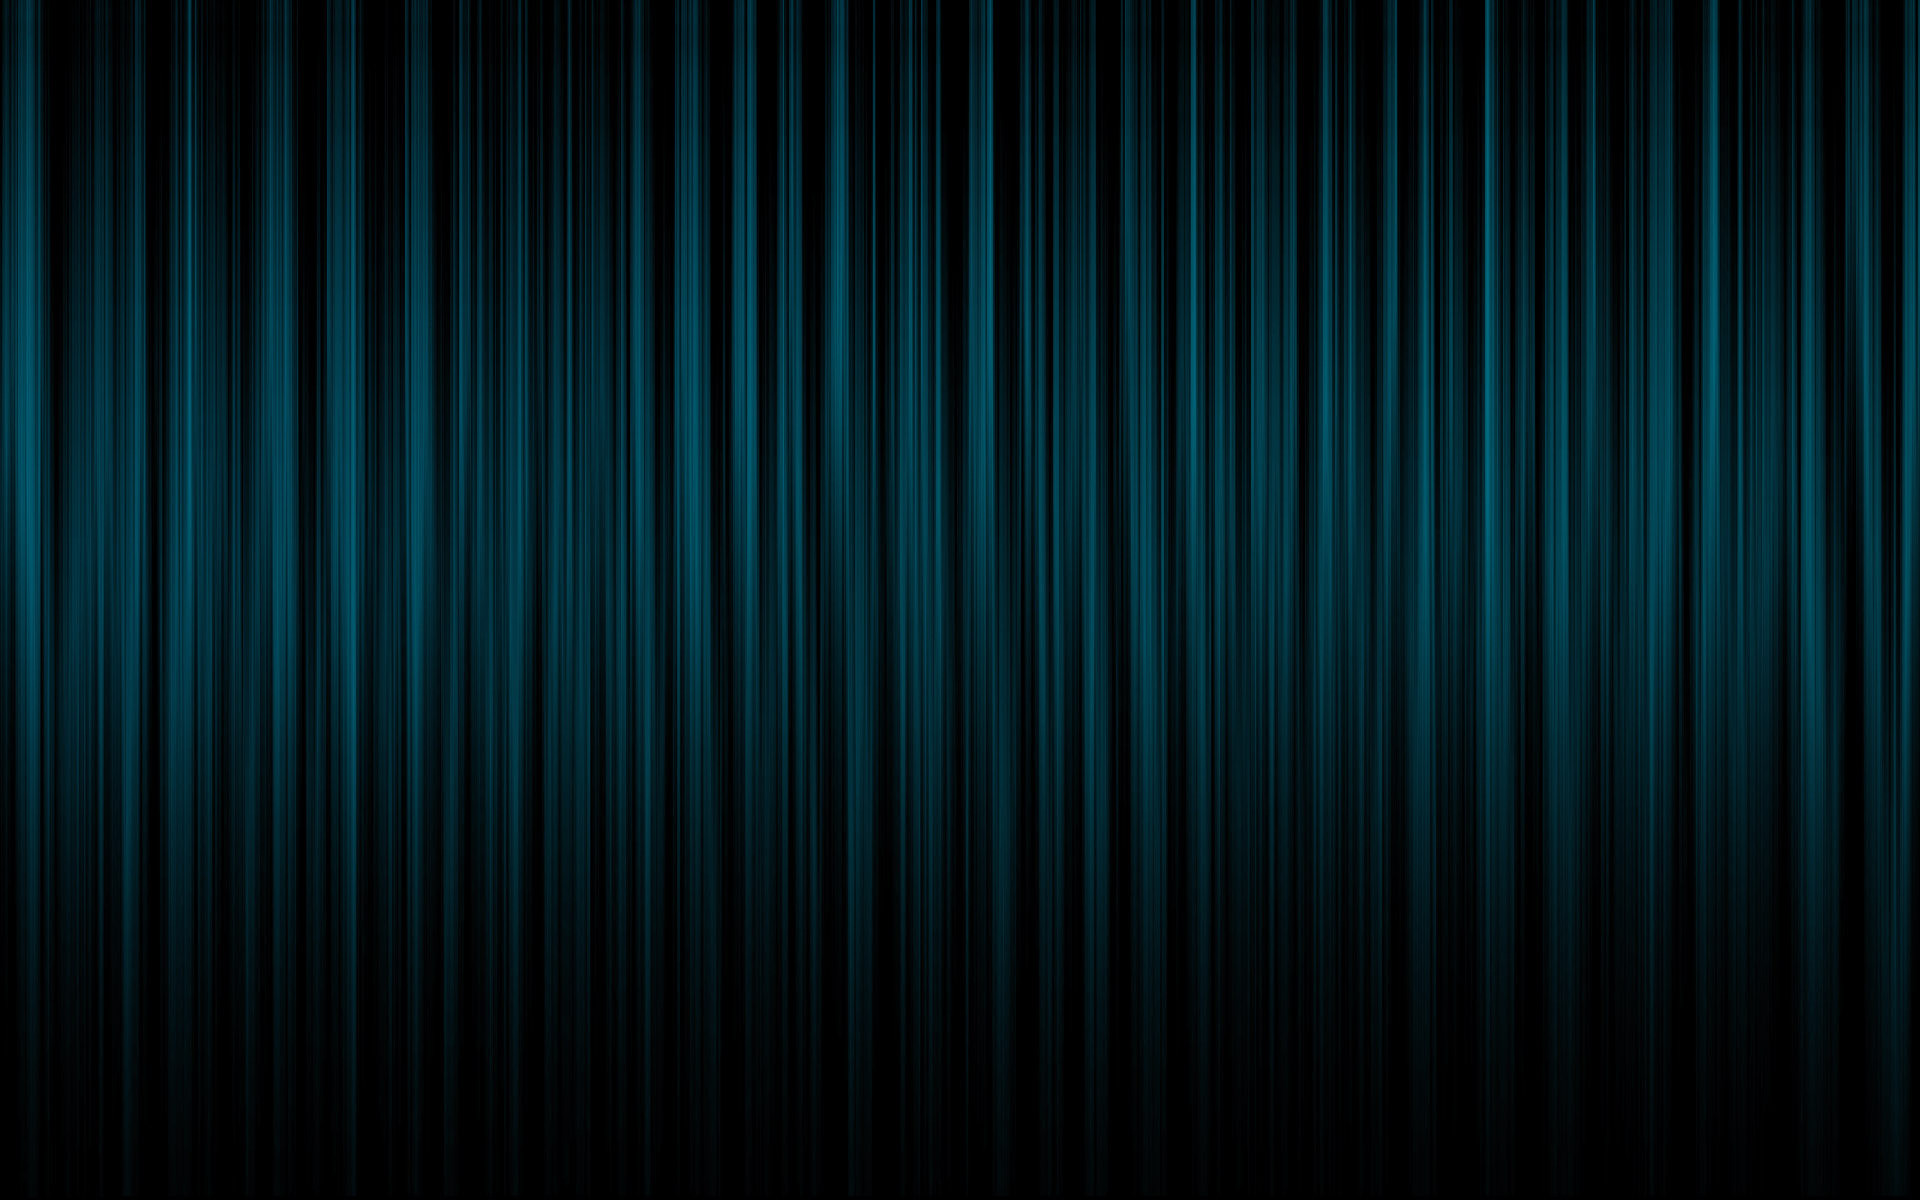 3d Animated Wallpaper Windows 7 Free Download Black 3d Background 183 ①